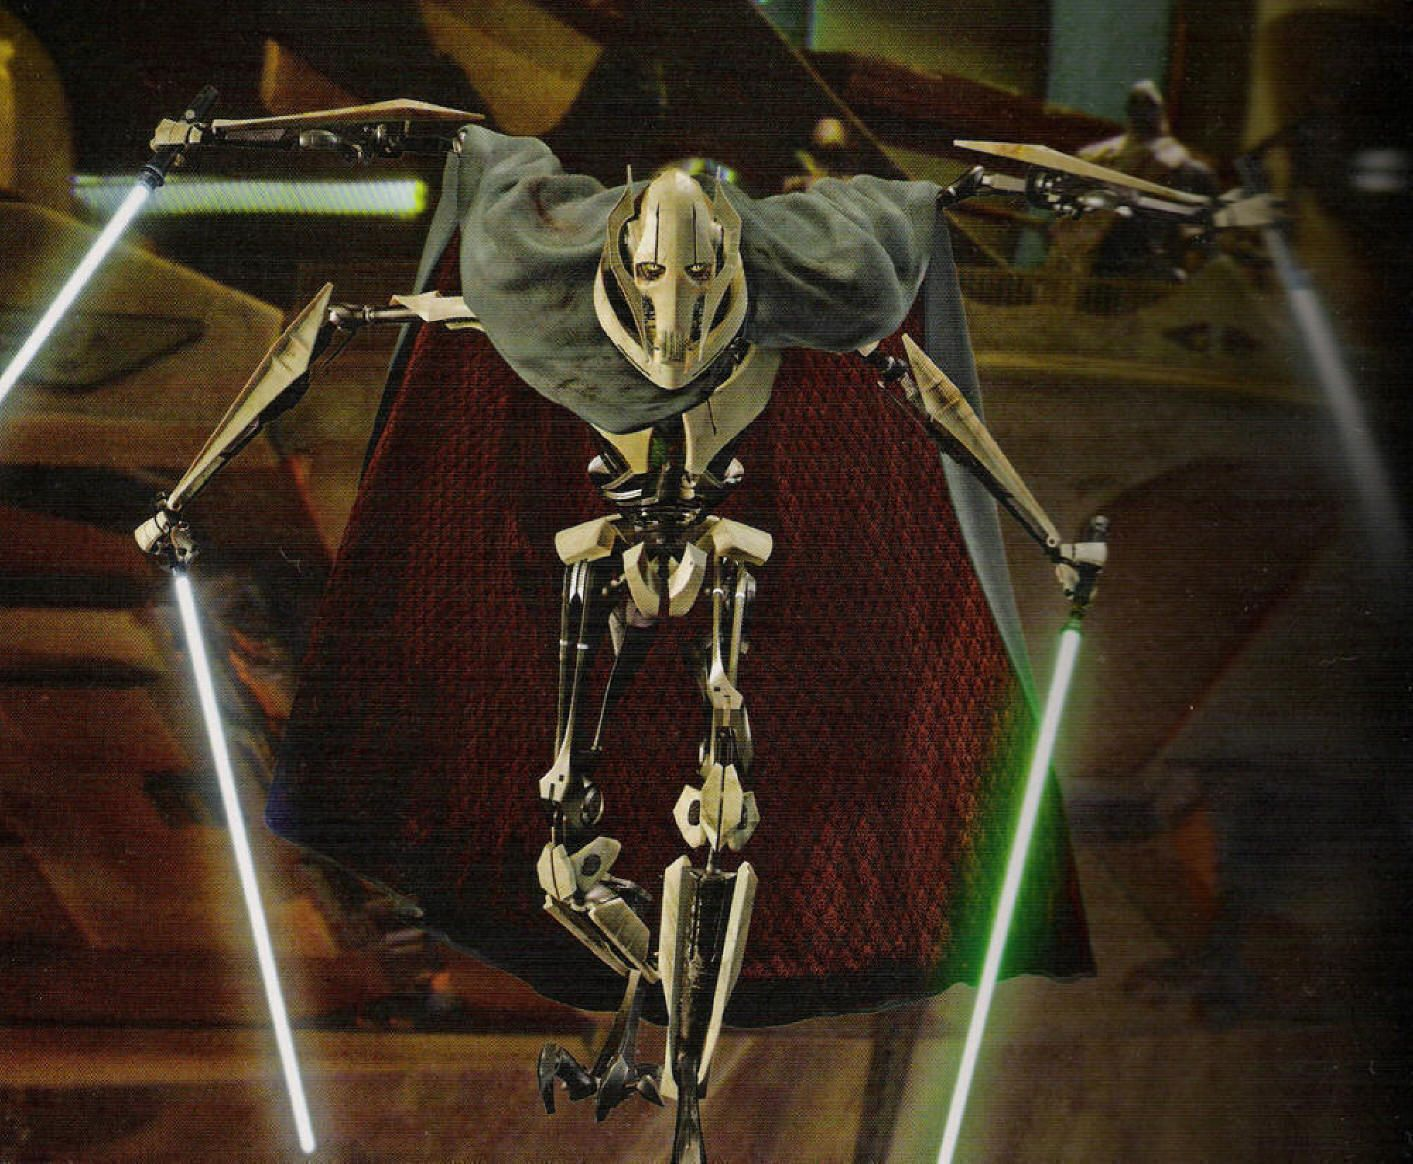 Uncategorized Pictures Of General Grievous general grievous qymaen jai sheelal cyborg of the separatists star